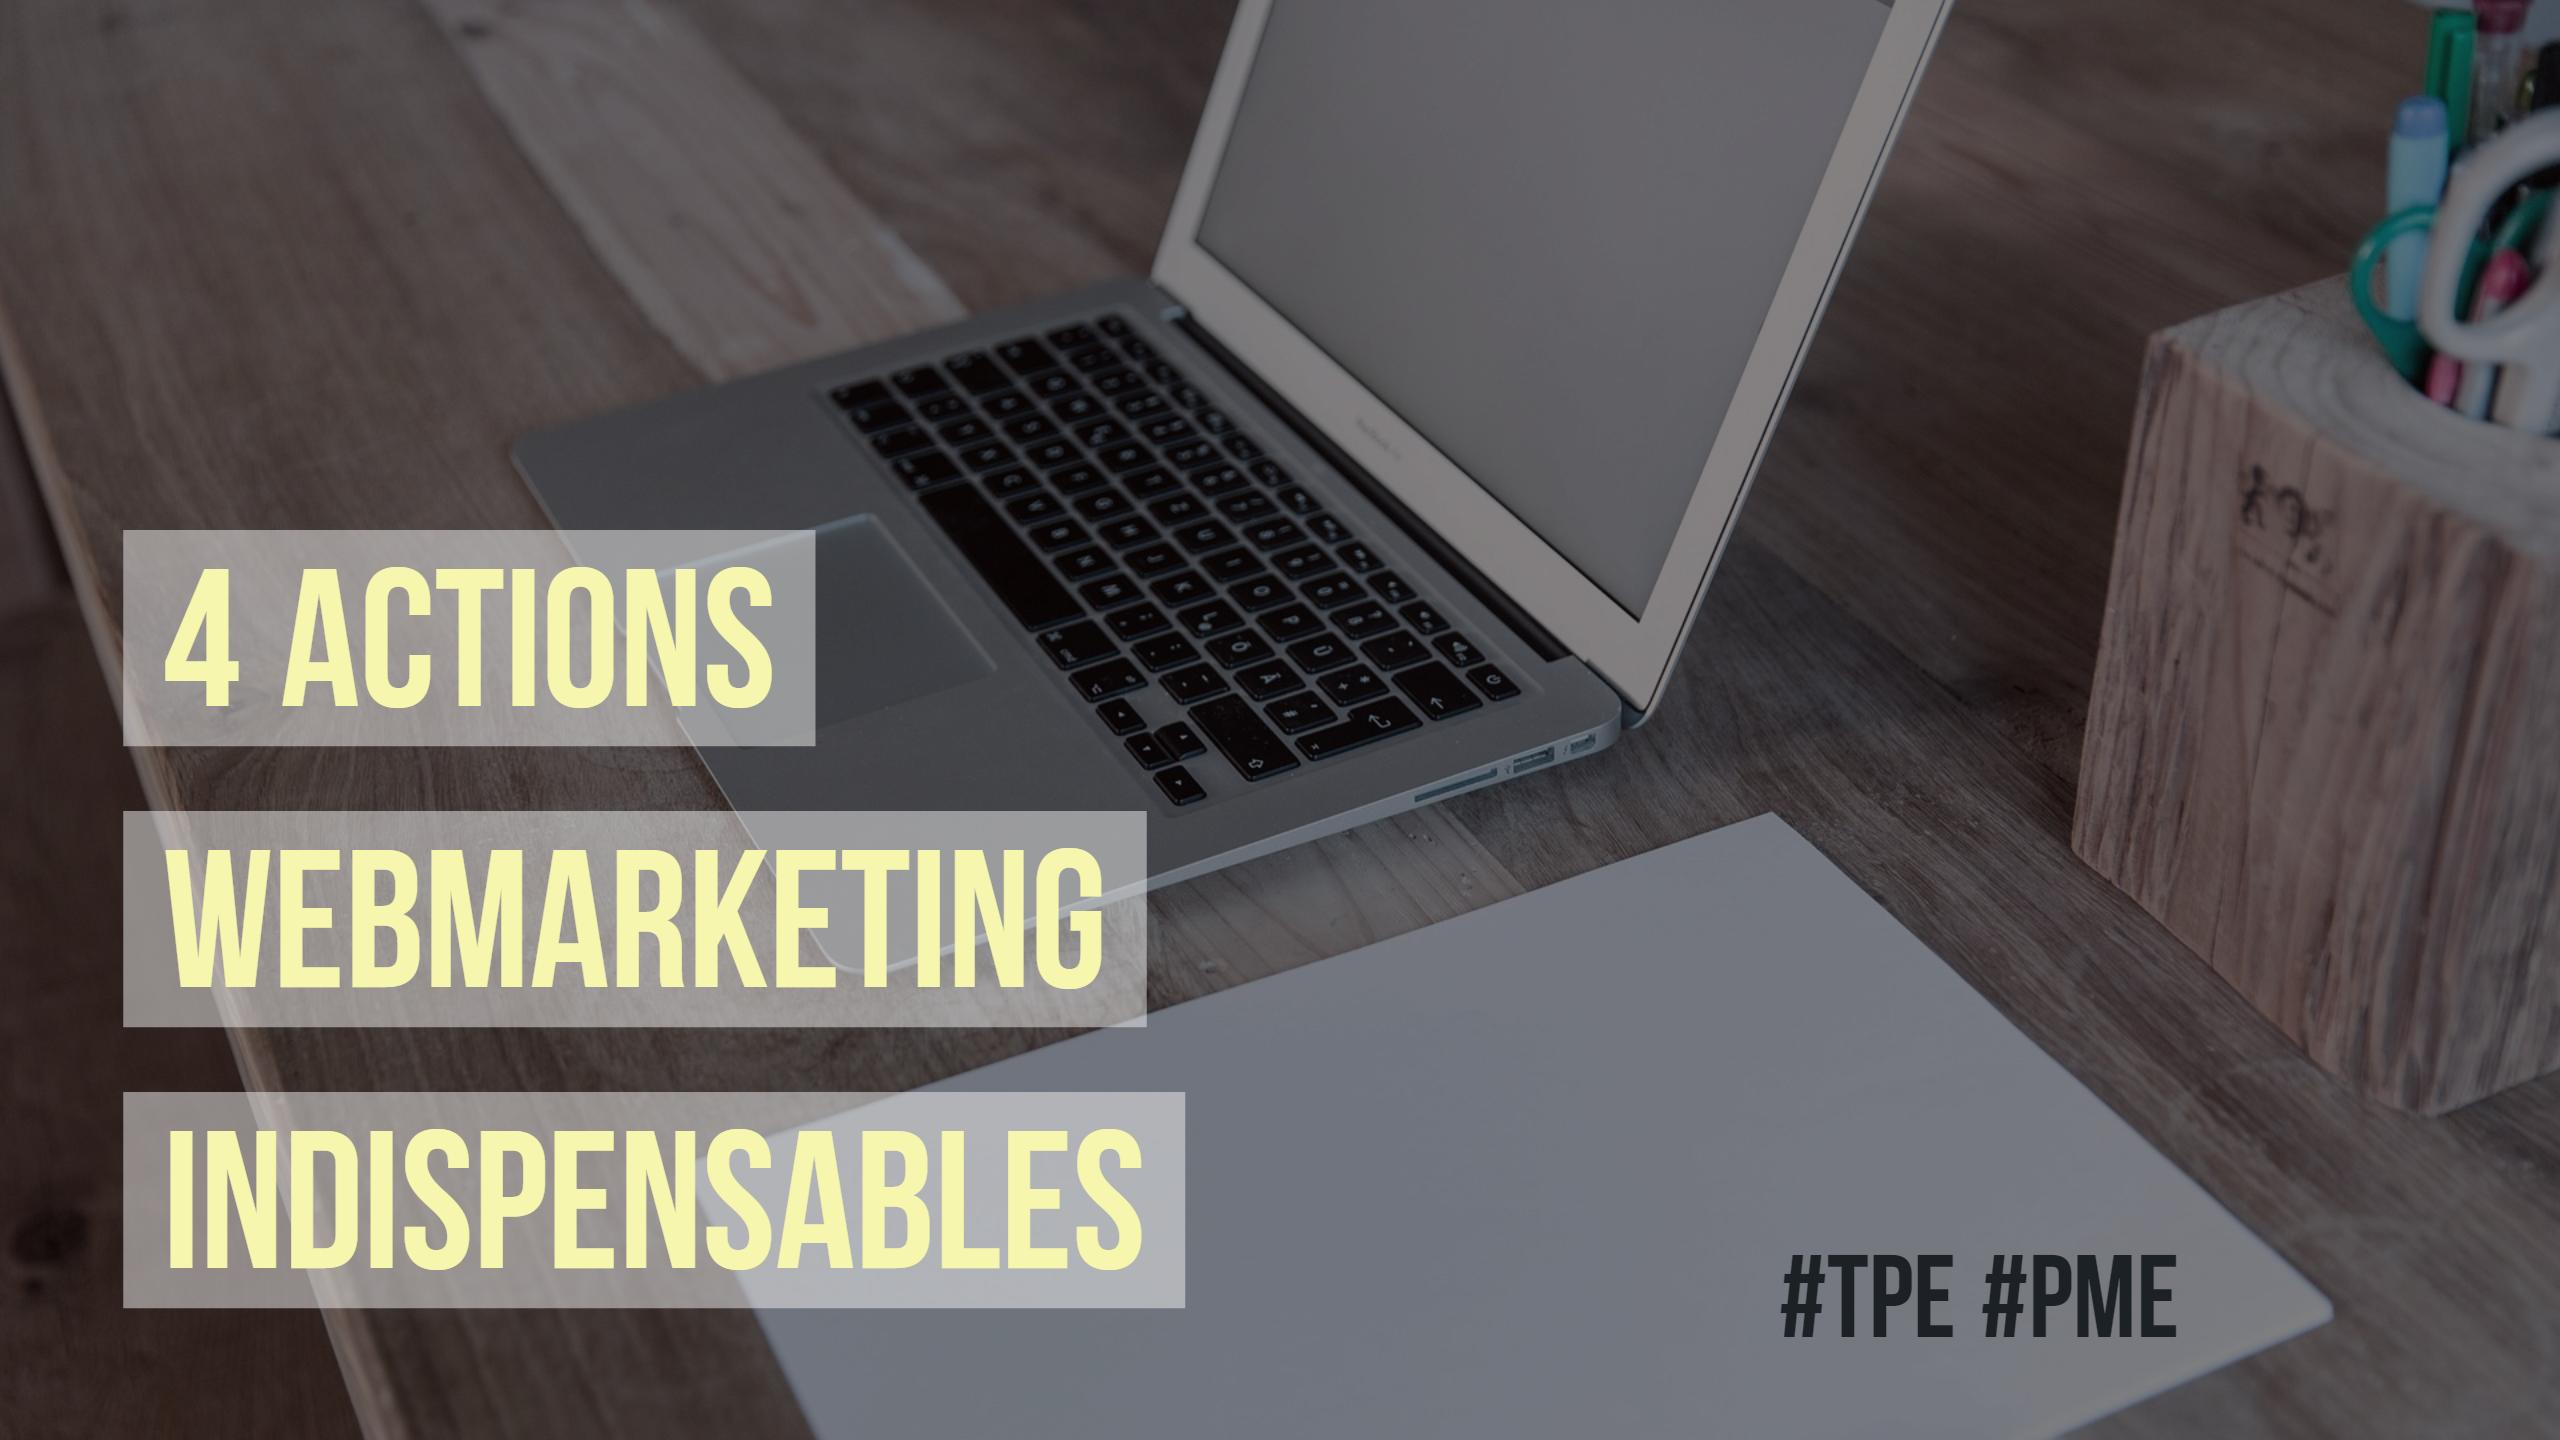 TPE, PME : les actions webmarketing indispensables